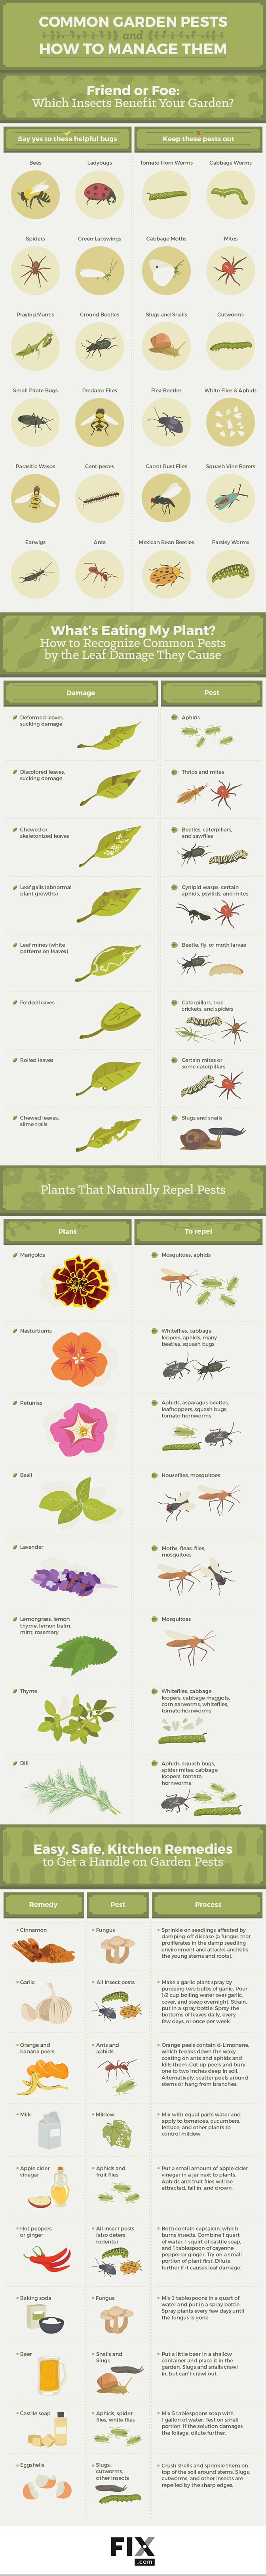 Common Garden Pests  this is a great guide to help identify garden pests and to help managed pests in the garden. Identify those insects that are beneficial to your garden.   Garden, Tea, Cakes and Me